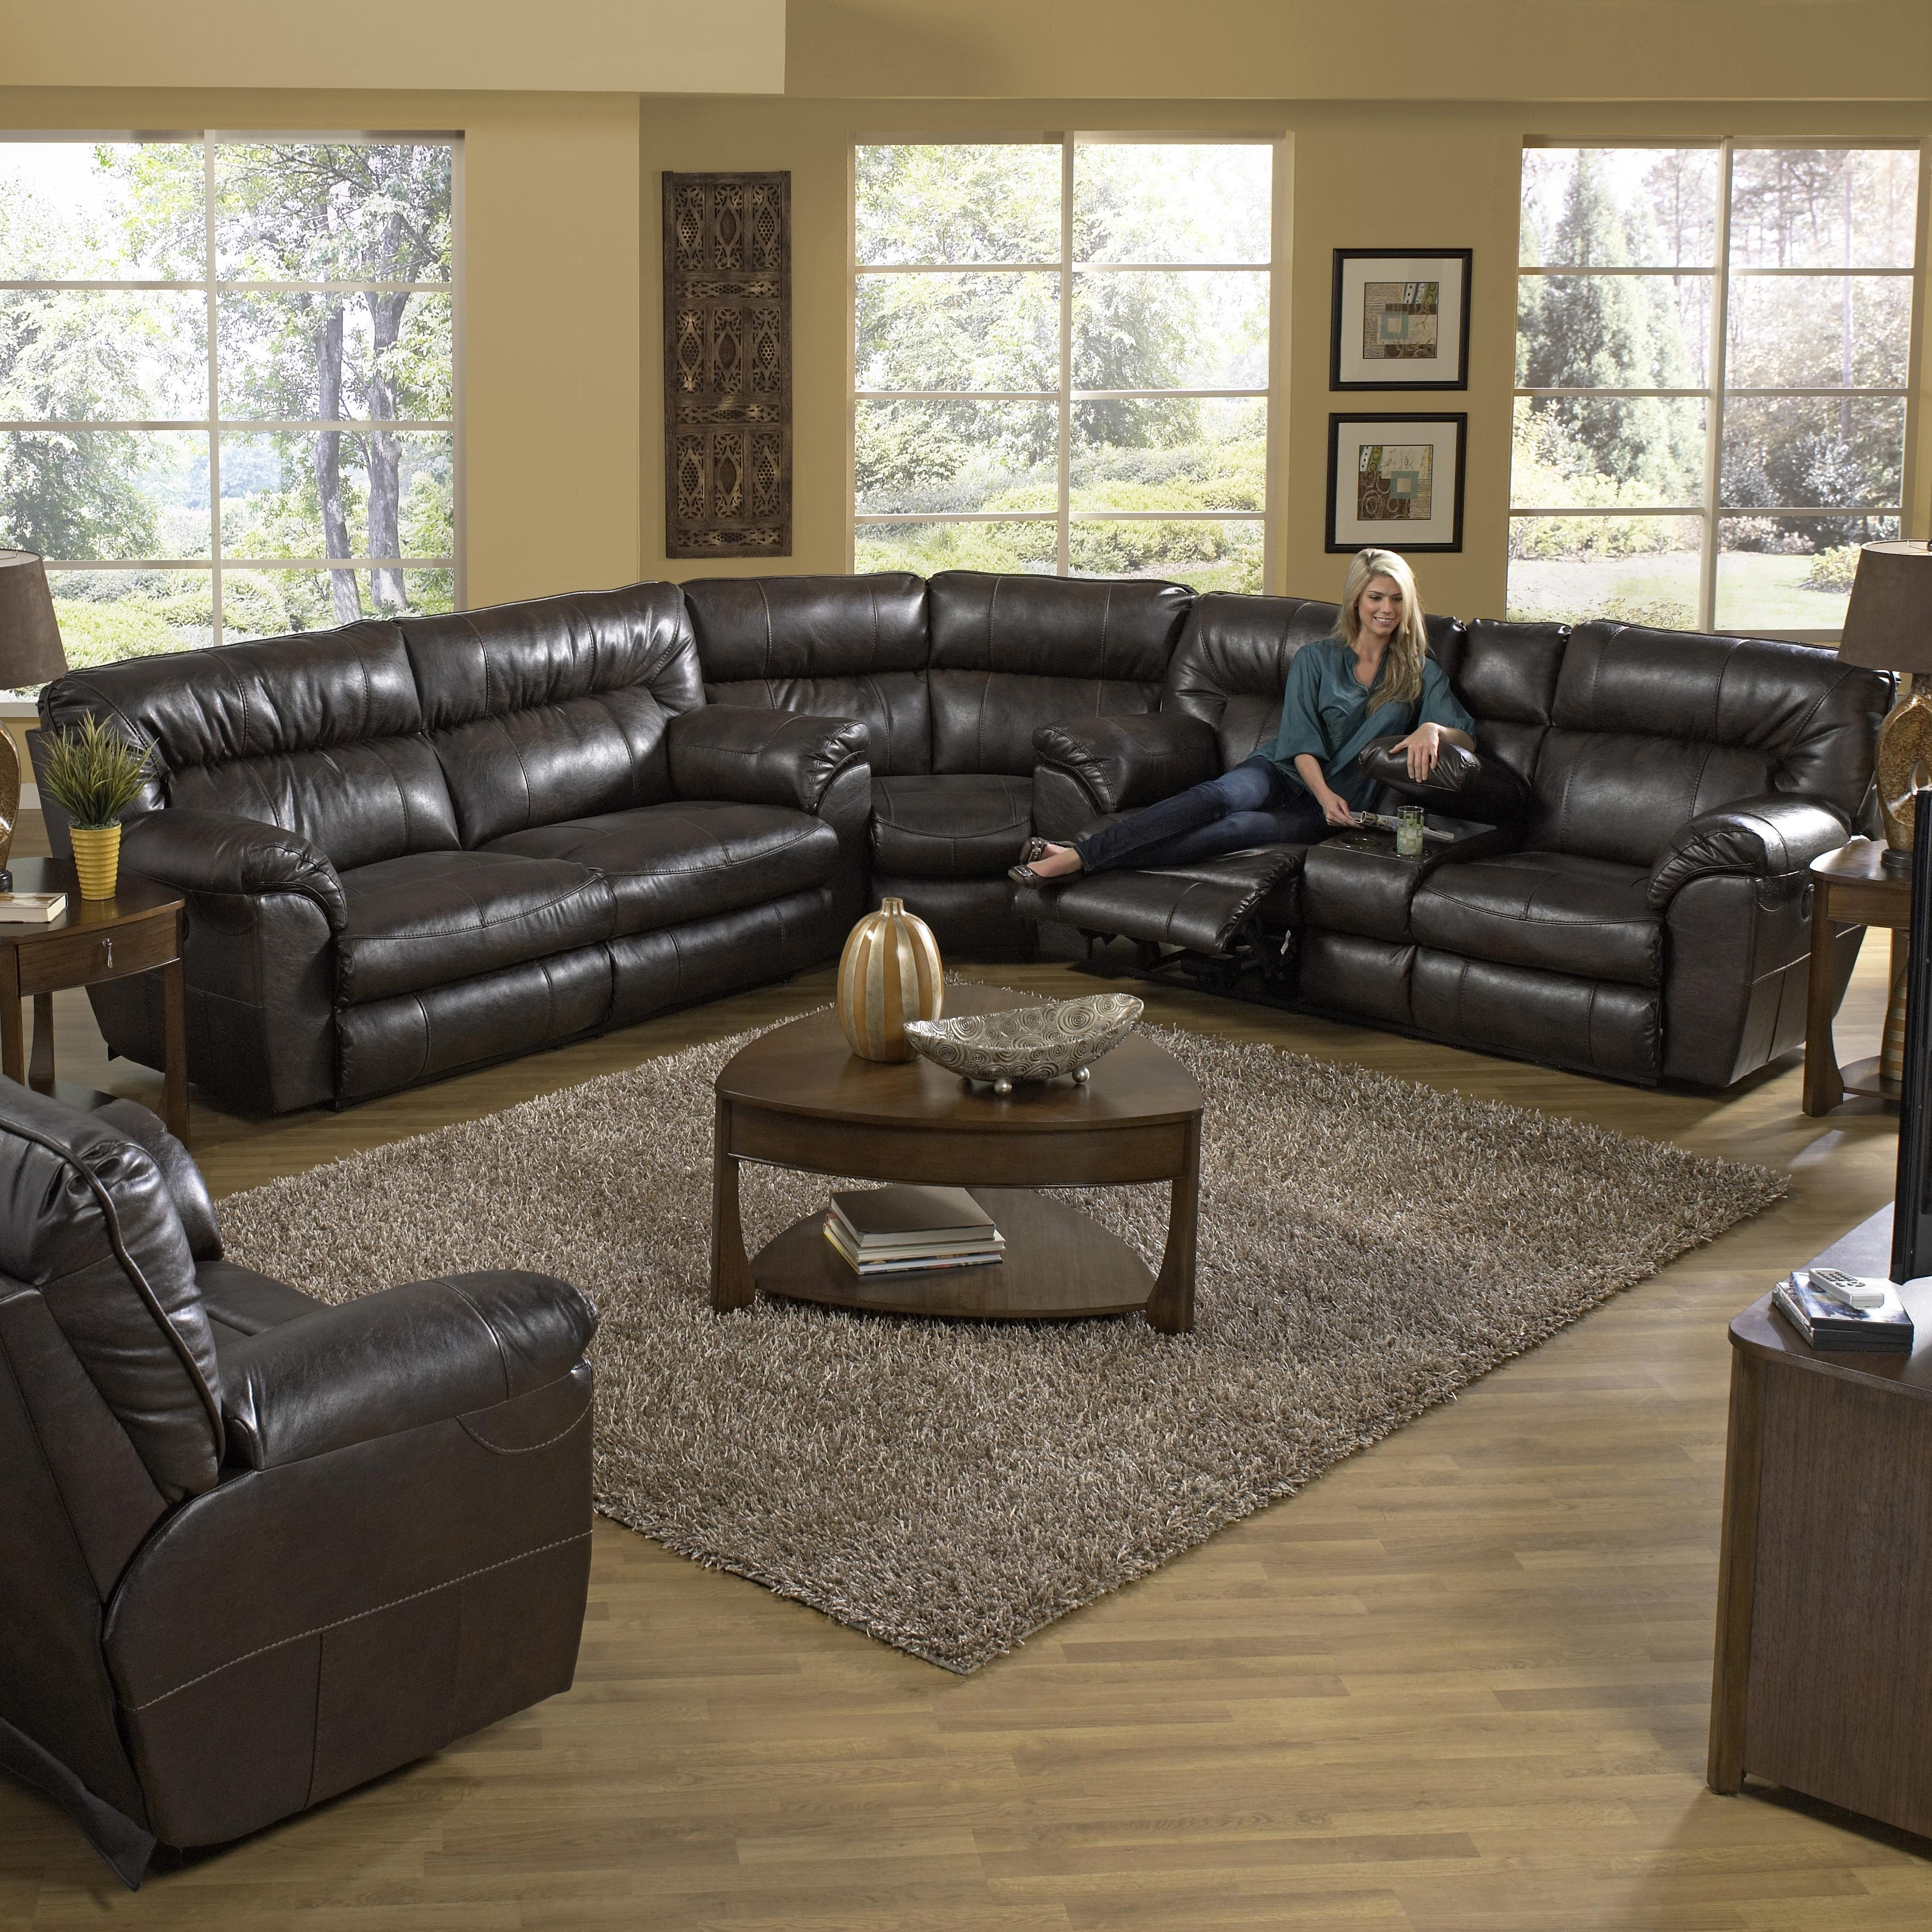 Reclining Sectional Sofa With Right Consolecatnapper | Wolf And With Regard To Sectional Sofas With Consoles (View 2 of 10)